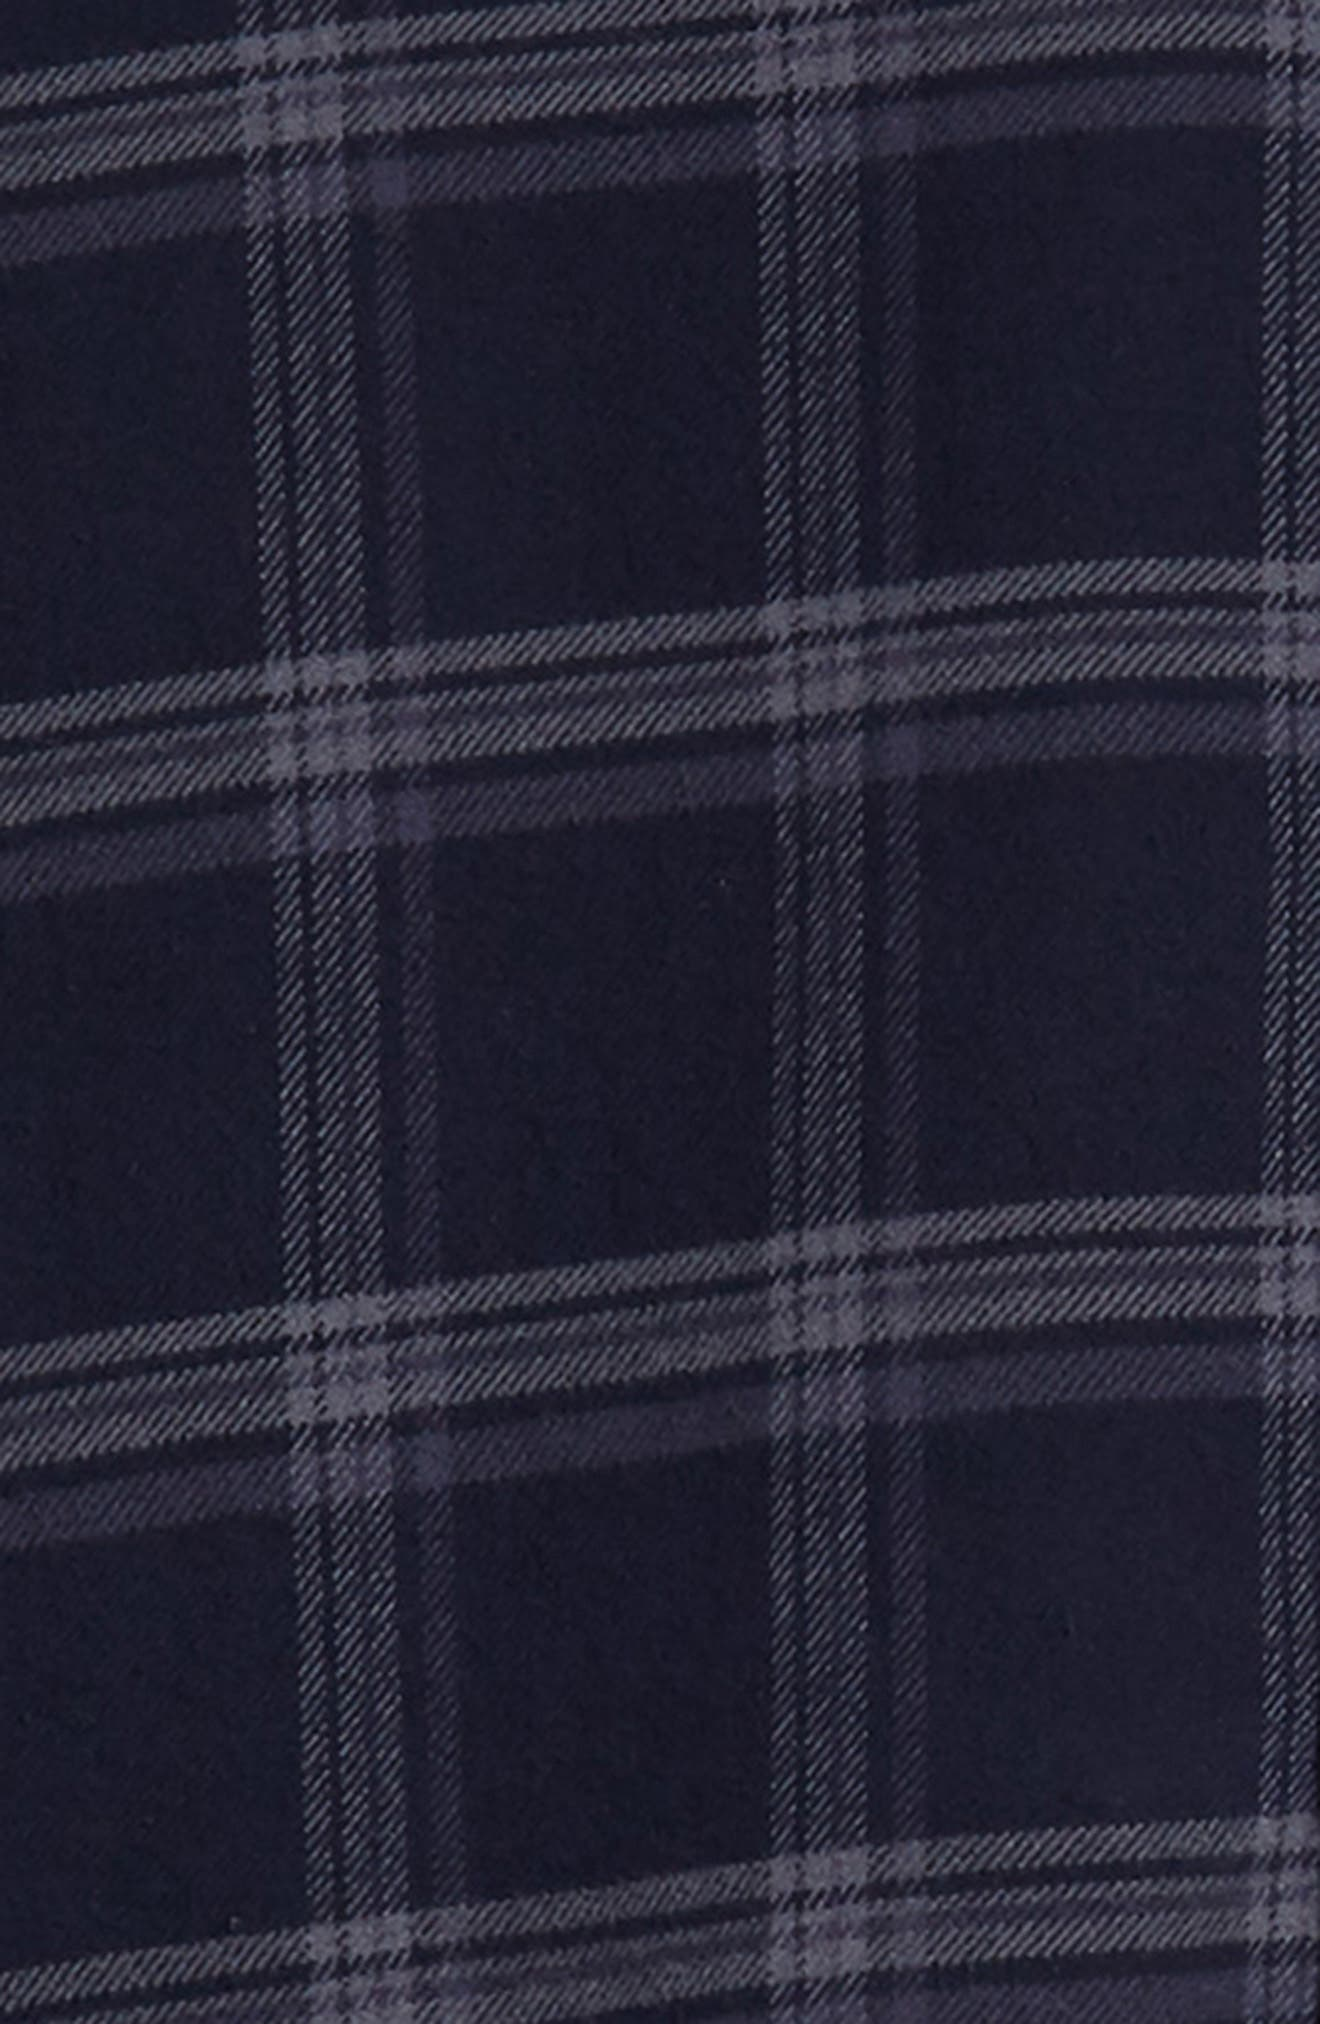 Forrest Slim Fit Plaid Flannel Sport Shirt,                             Alternate thumbnail 6, color,                             NAVY/HEATHERED CHARCOAL